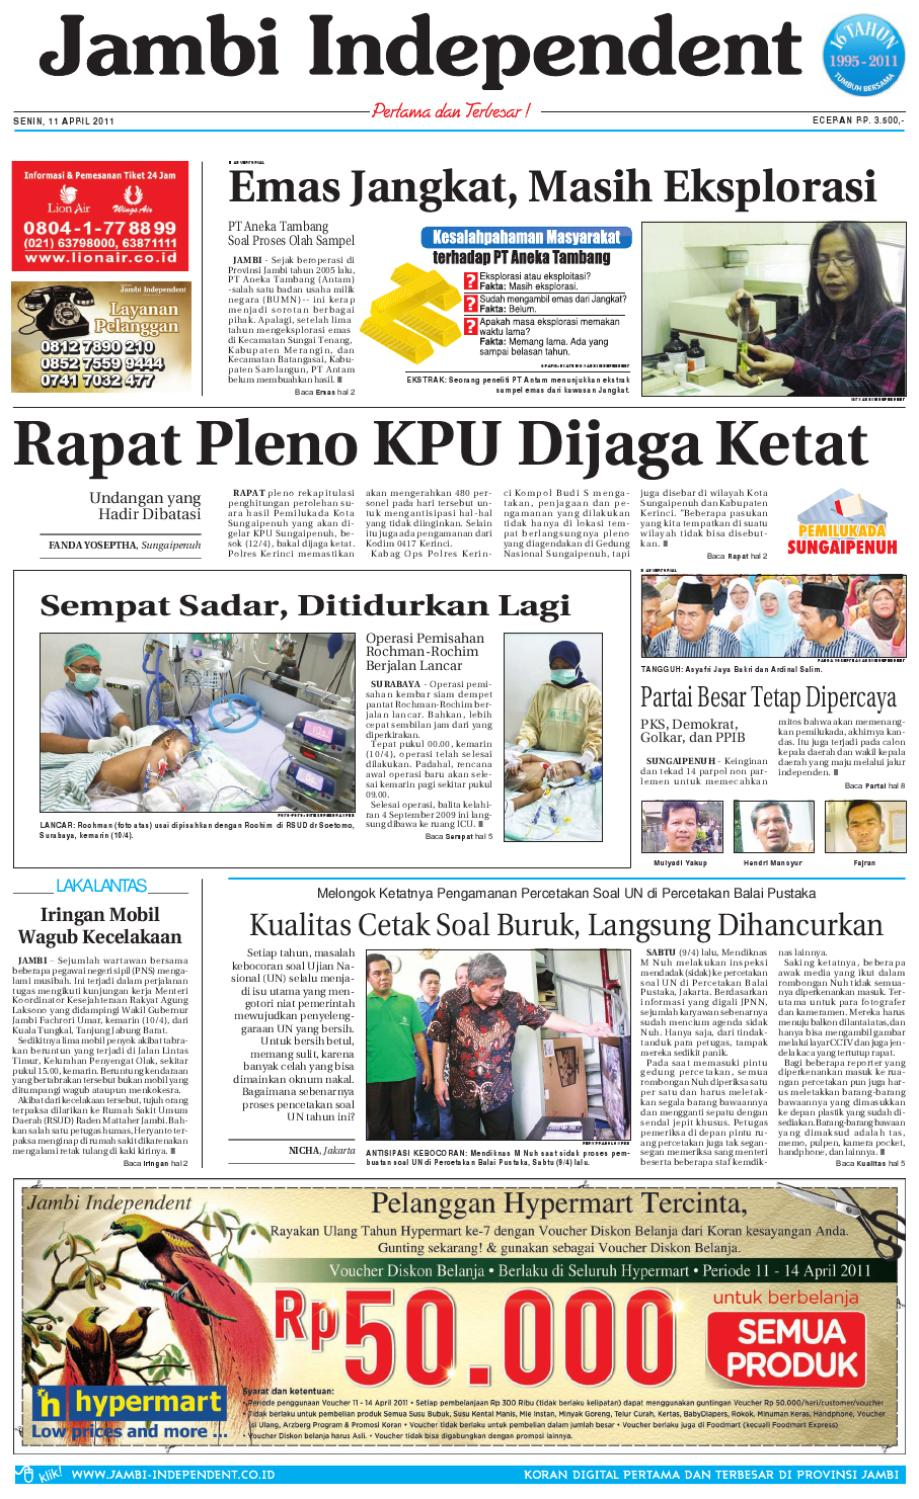 Jambi Independent 11 April 2011 By Jambi Independent Issuu